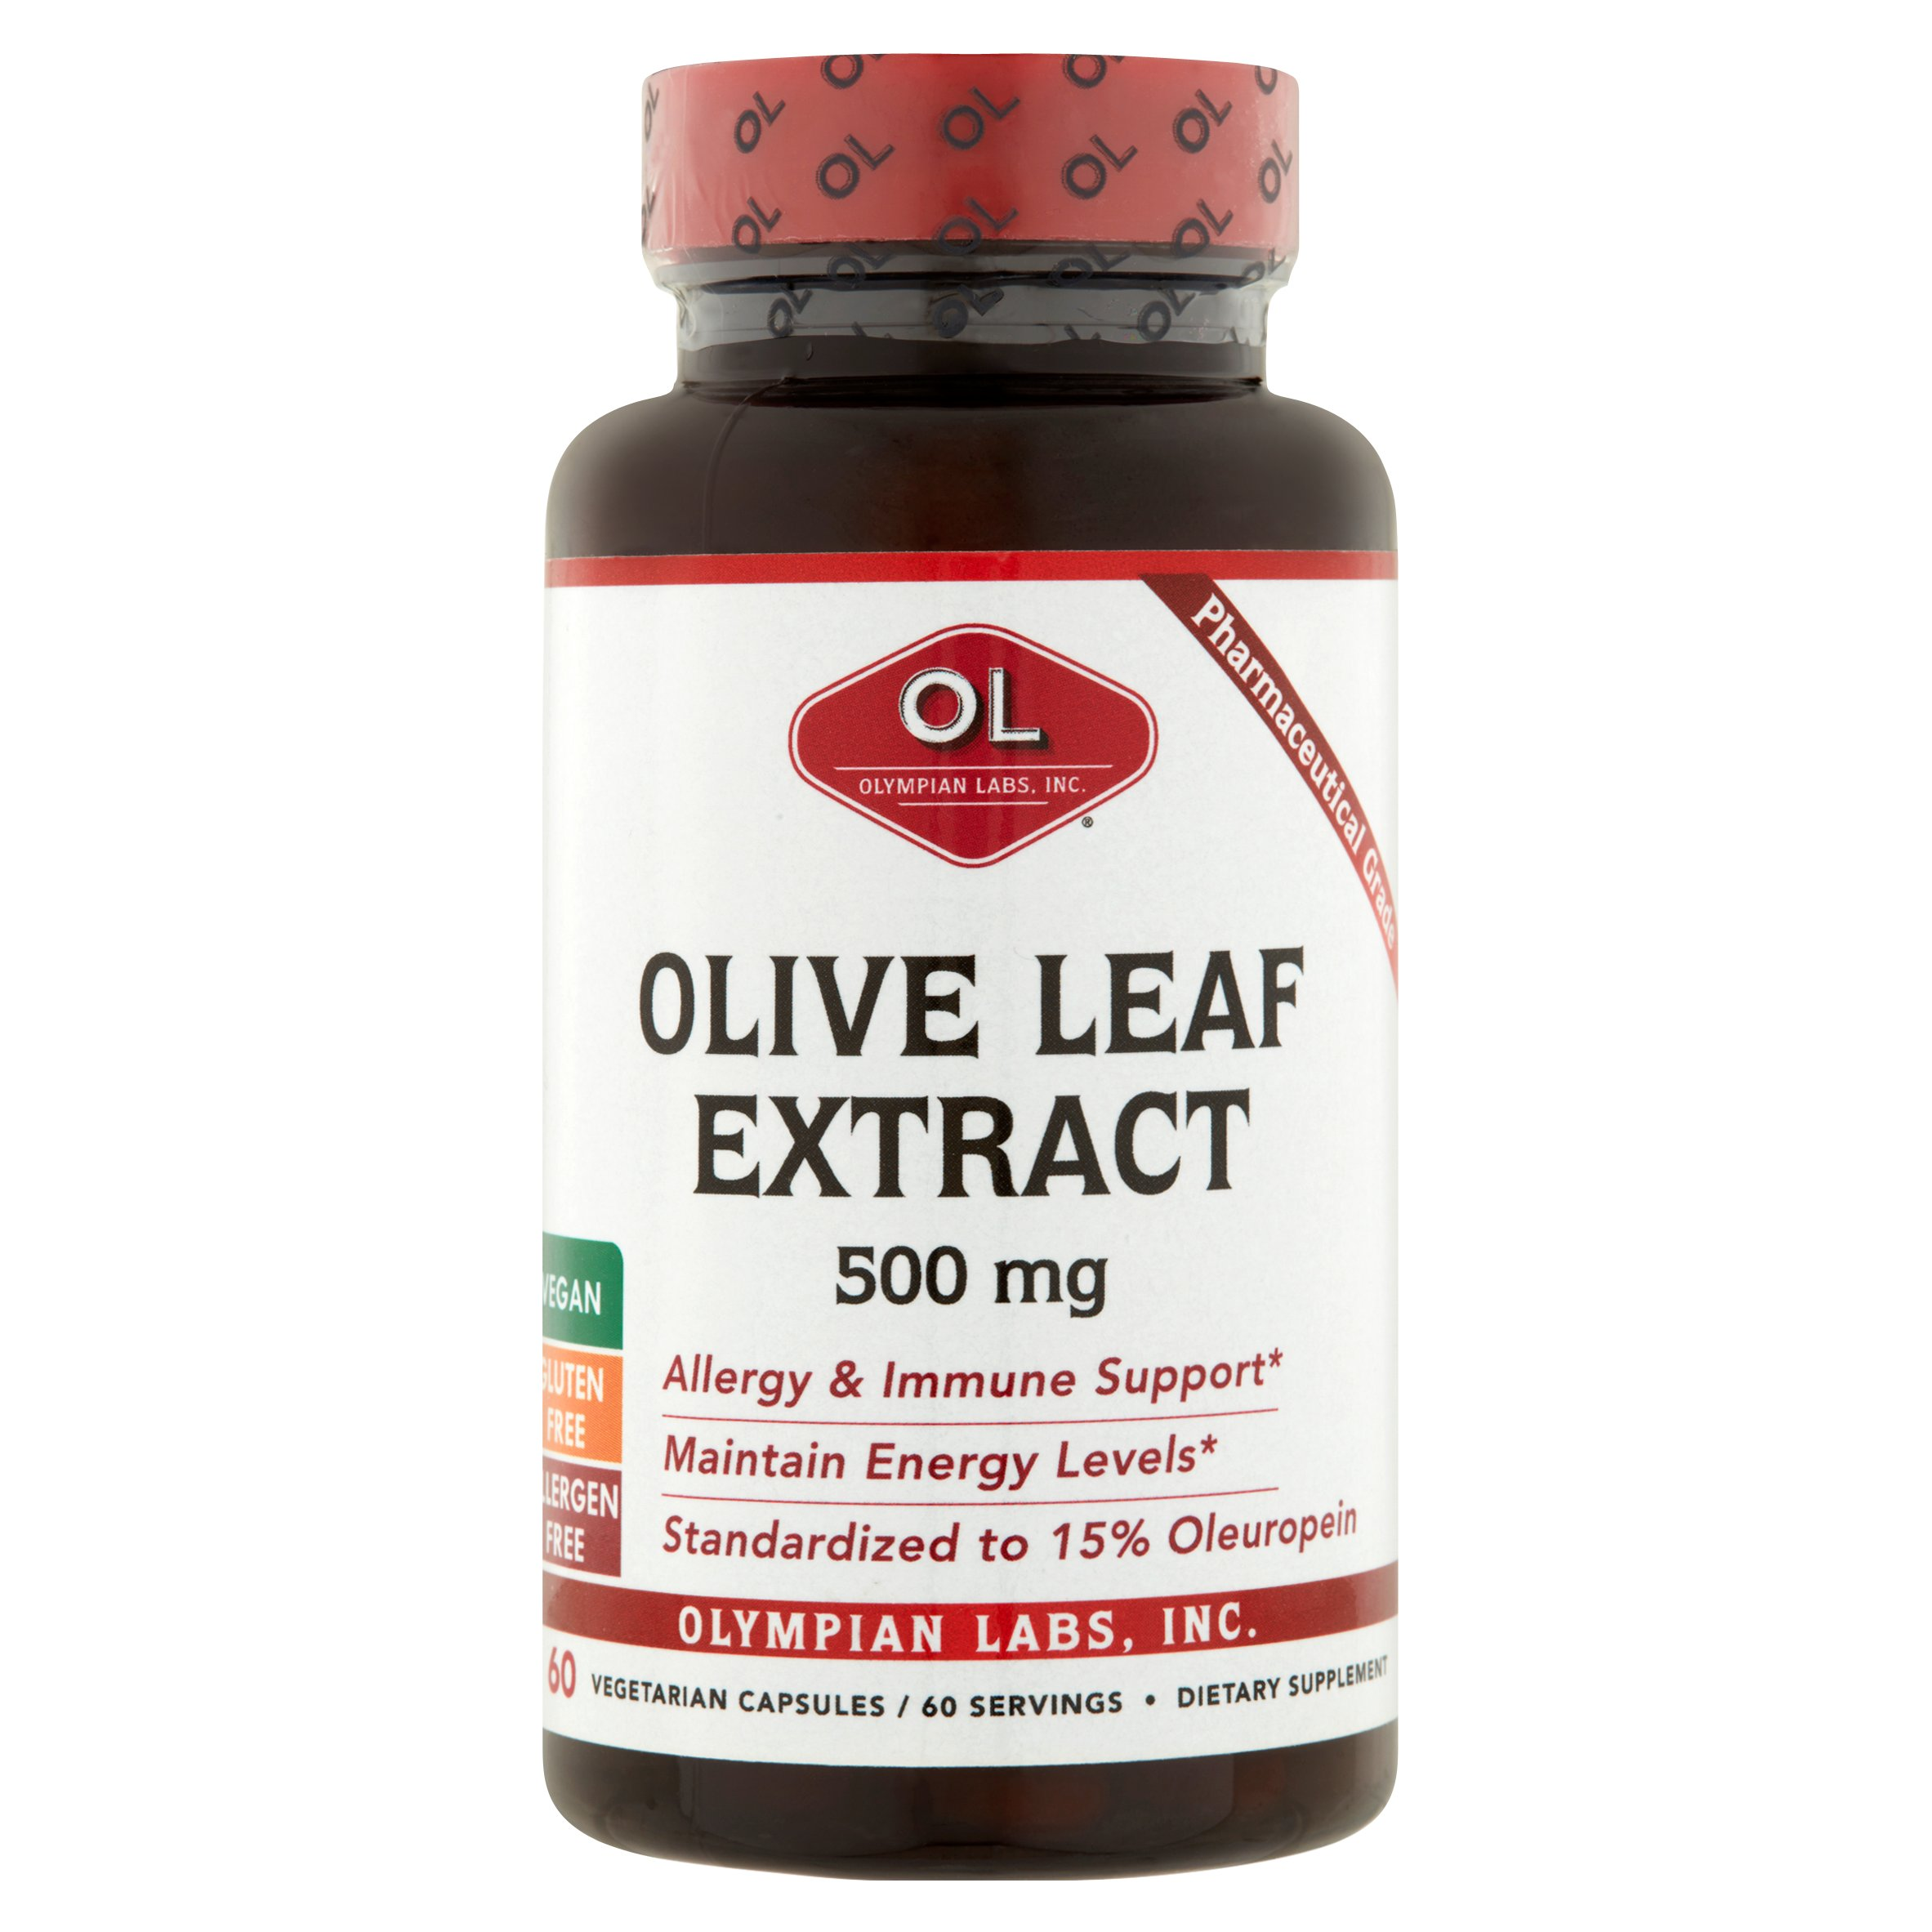 Olympian Labs-Olive Leaf Extract, 500mg 60ct